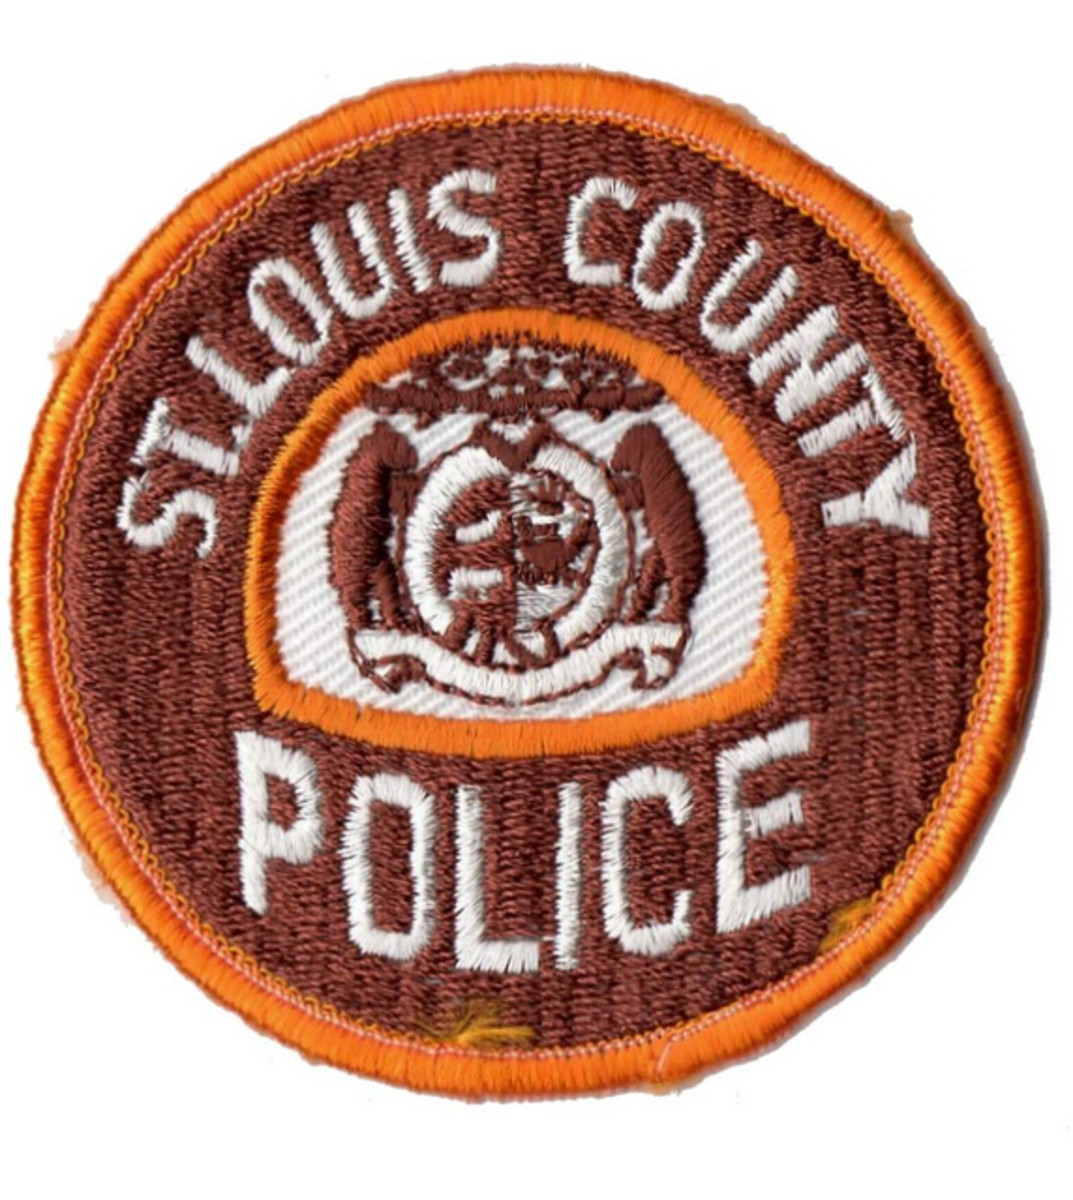 This was the uniform shoulder patch used by the St. louis County Police during the time I served there.